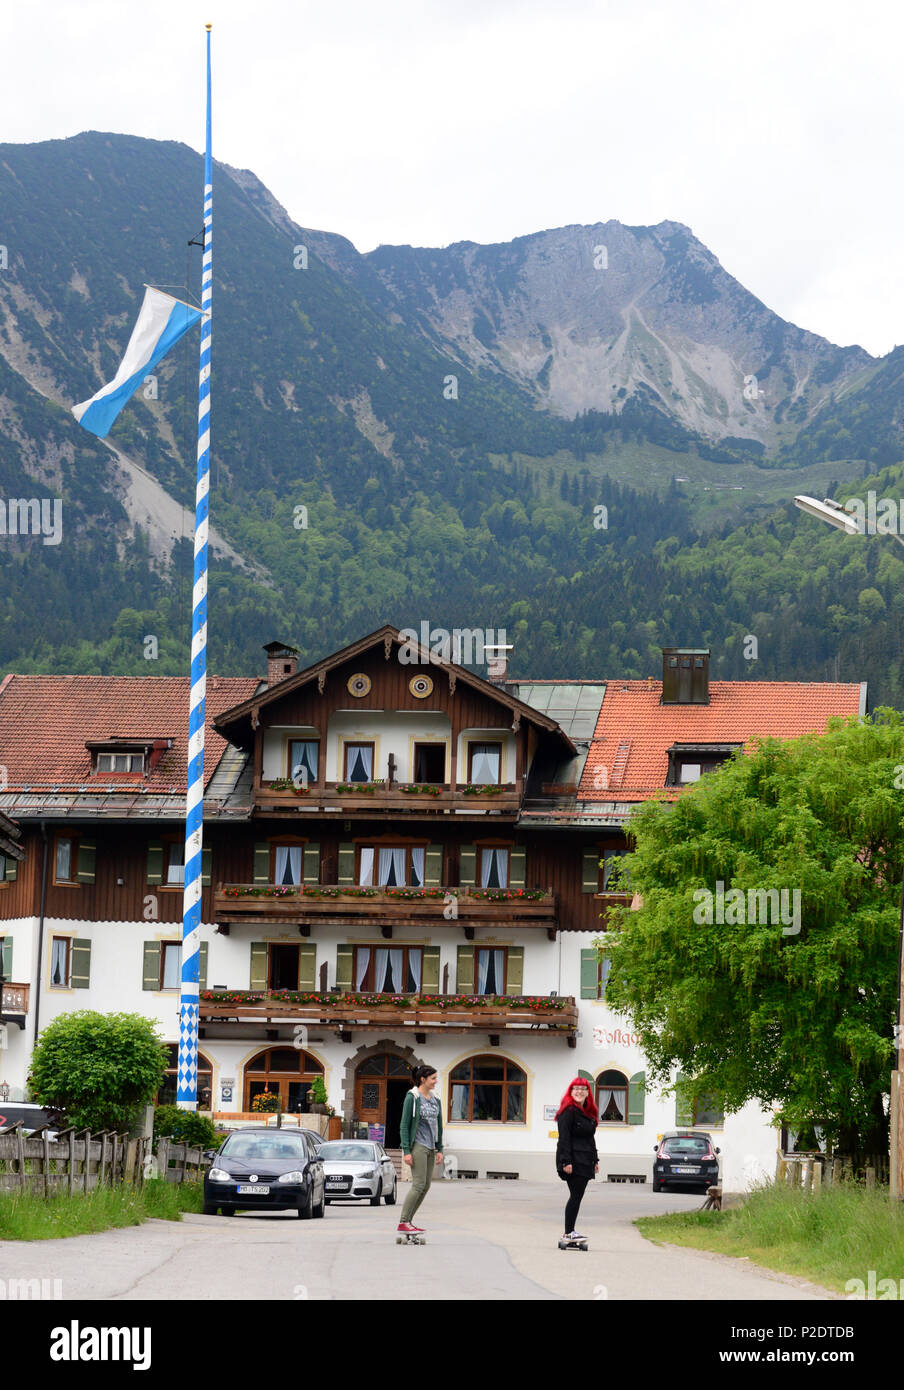 Geitau with Aiplspitze near Bayrischzell, Upper Bavaria, Bavaria, Germany - Stock Image